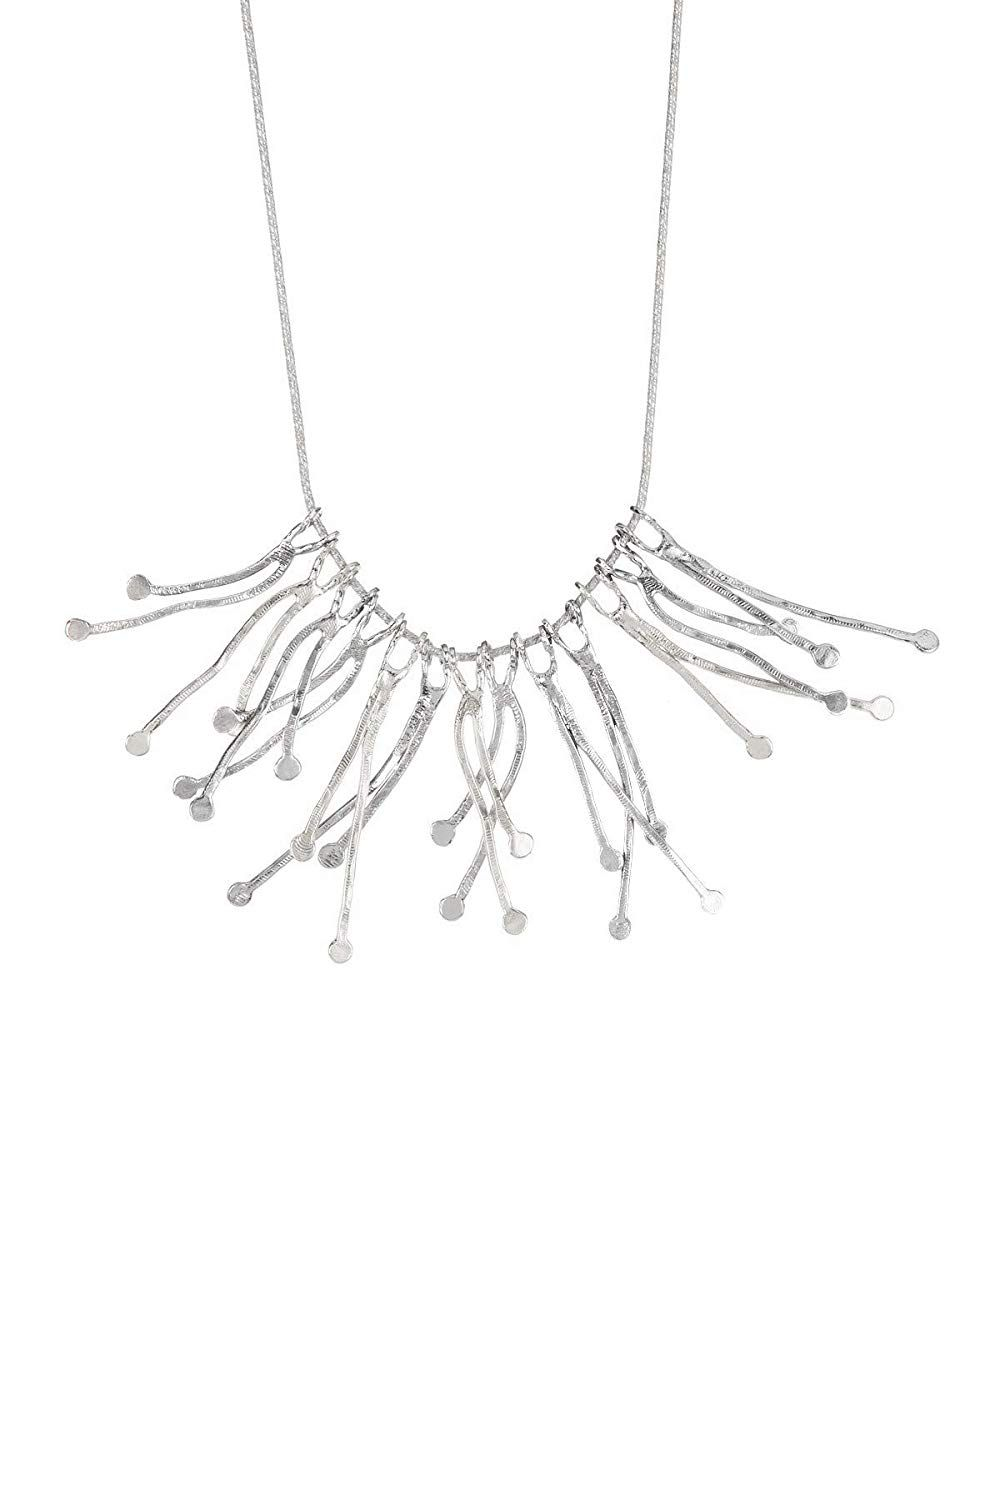 Paz Creations .925 Sterling Silver or Tri-Color Branch Statement Necklace